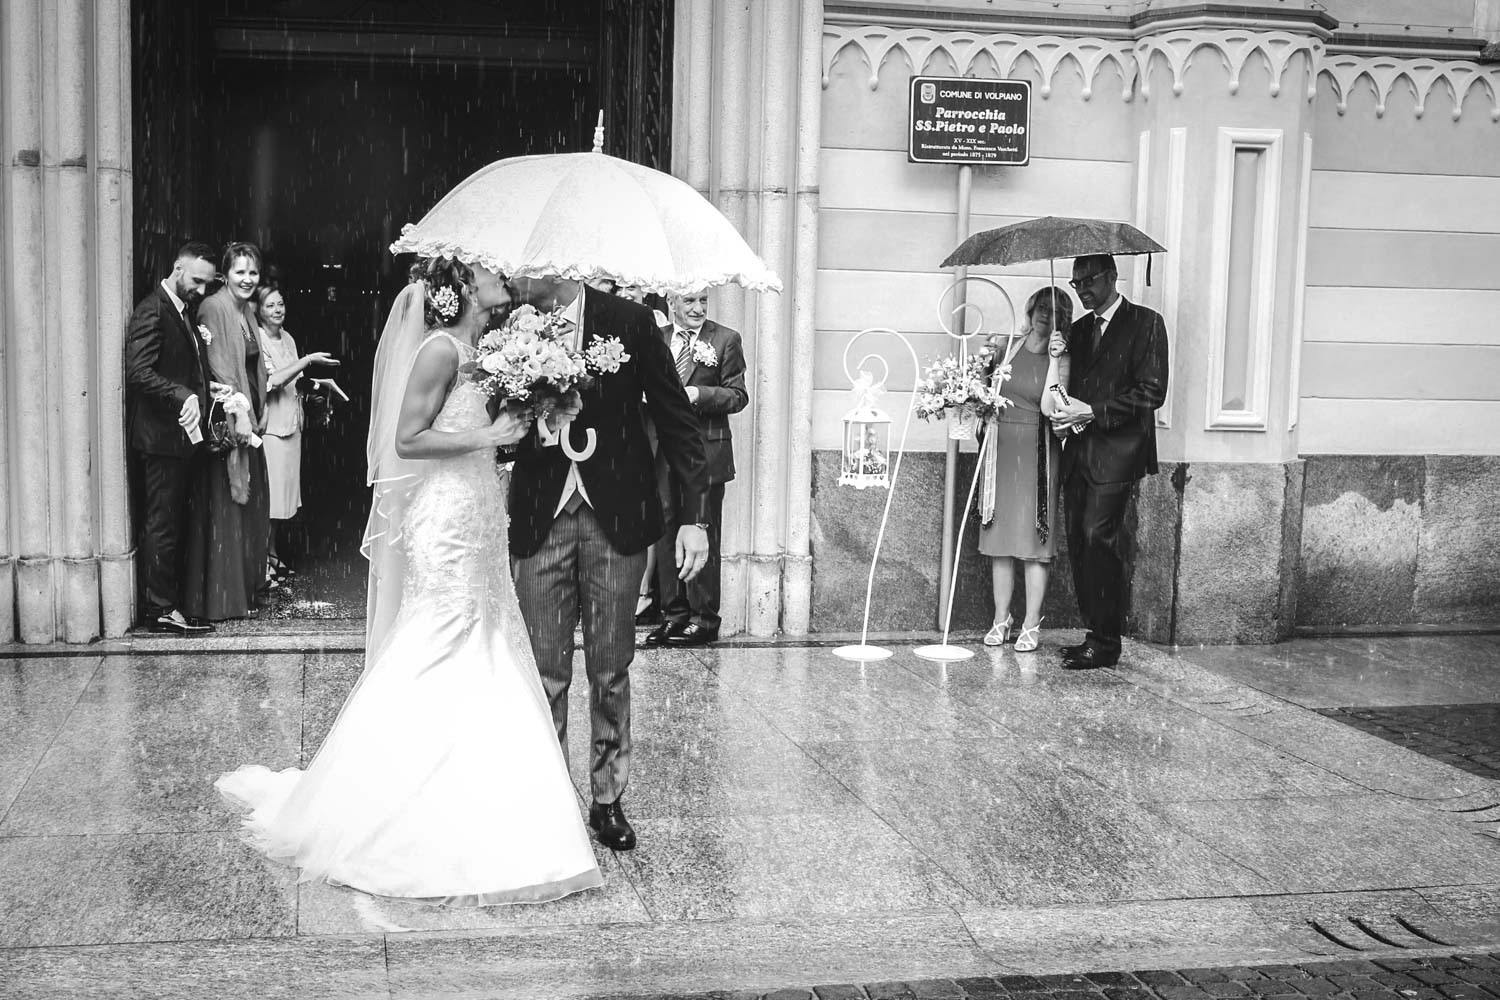 39monica sica_art foto_fotografo matrimonio_torino_ristorante_location_wedding_villa bodo_moncrivello039_ART_2266